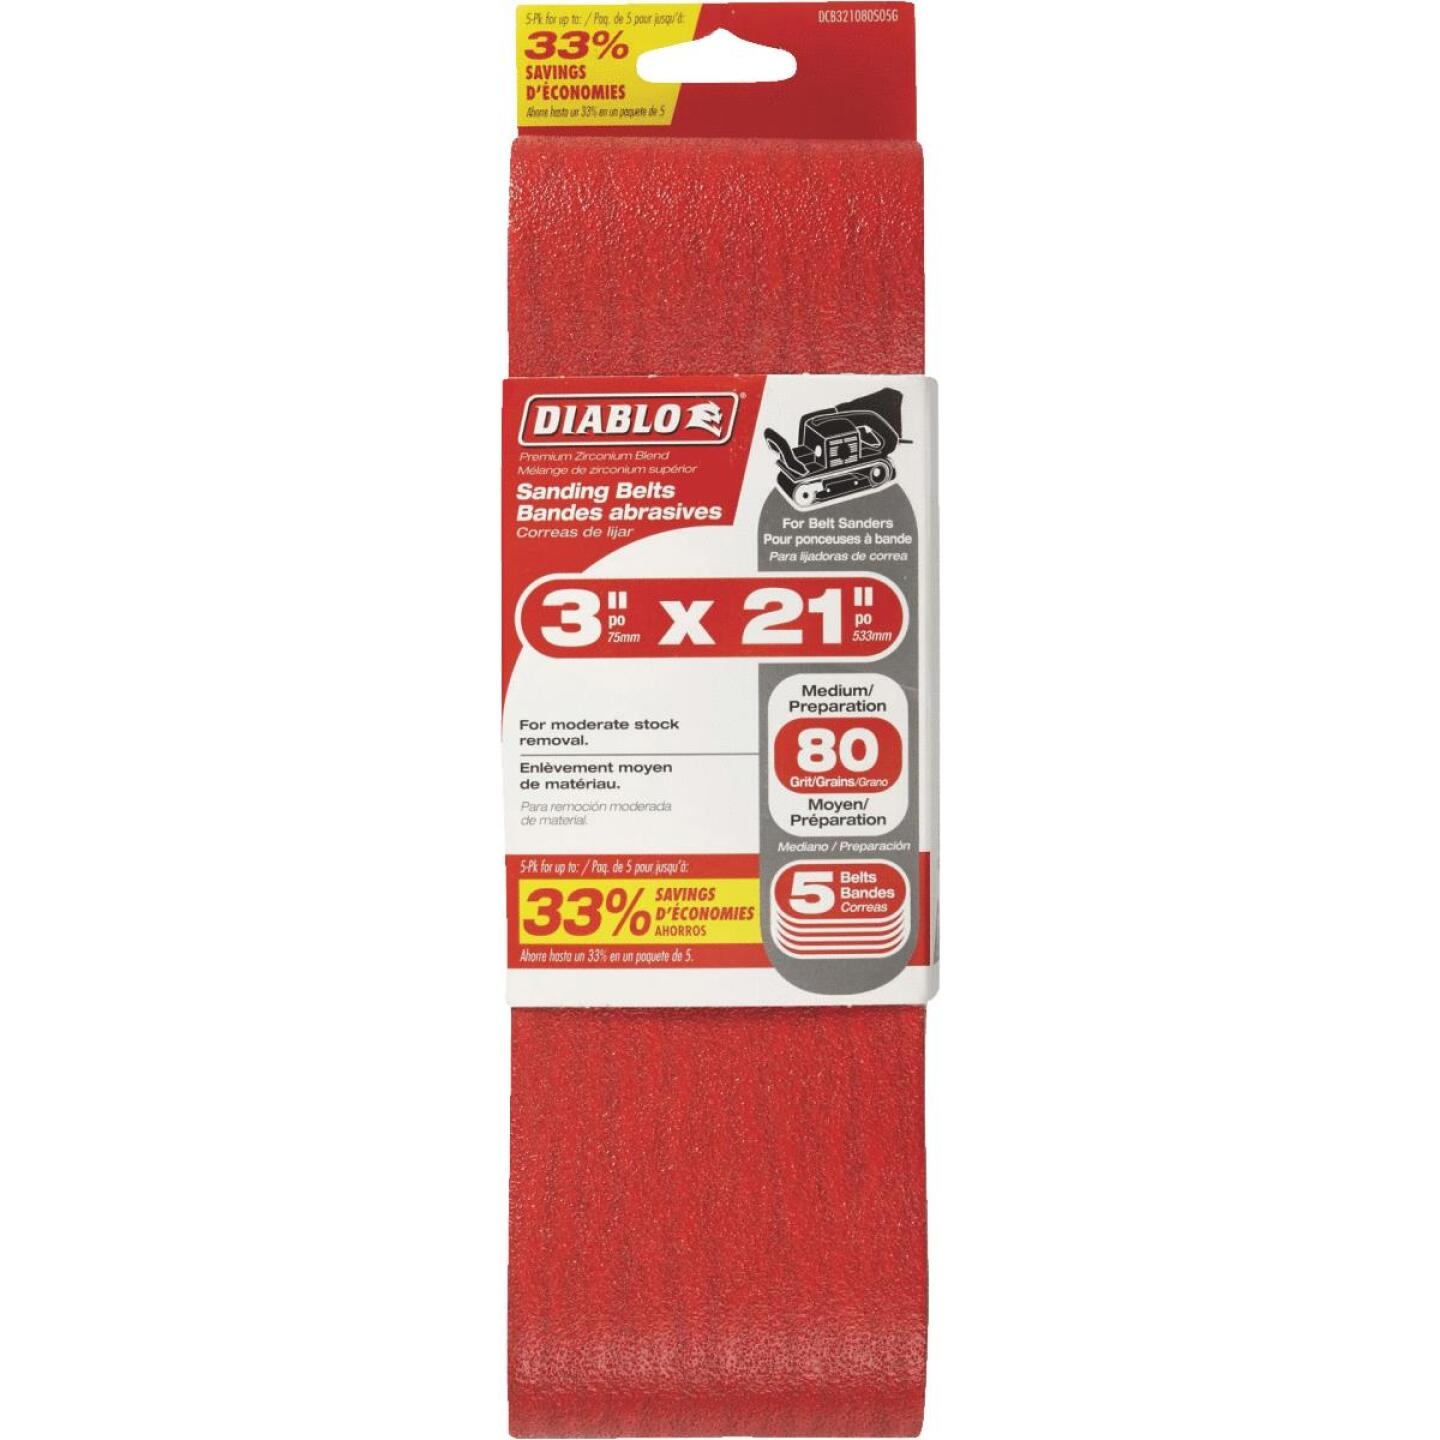 Diablo 3 In. x 21 In. 80 Grit General Purpose Sanding Belt (5-Pack) Image 1